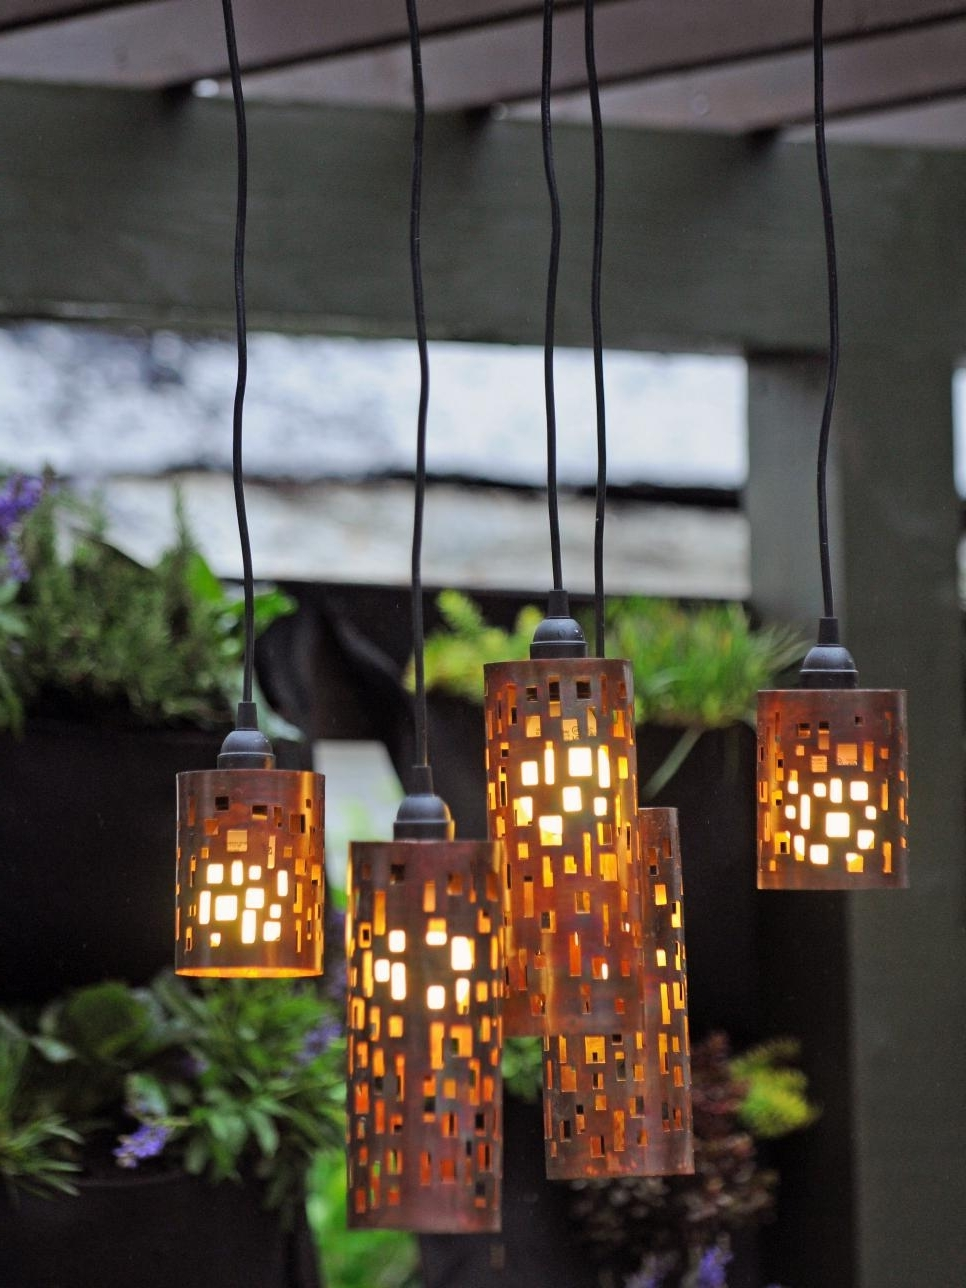 Unique Outdoor Hanging Lights For Preferred Set The Mood With Outdoor Lighting Trends And Pation Hanging Lights (View 20 of 20)